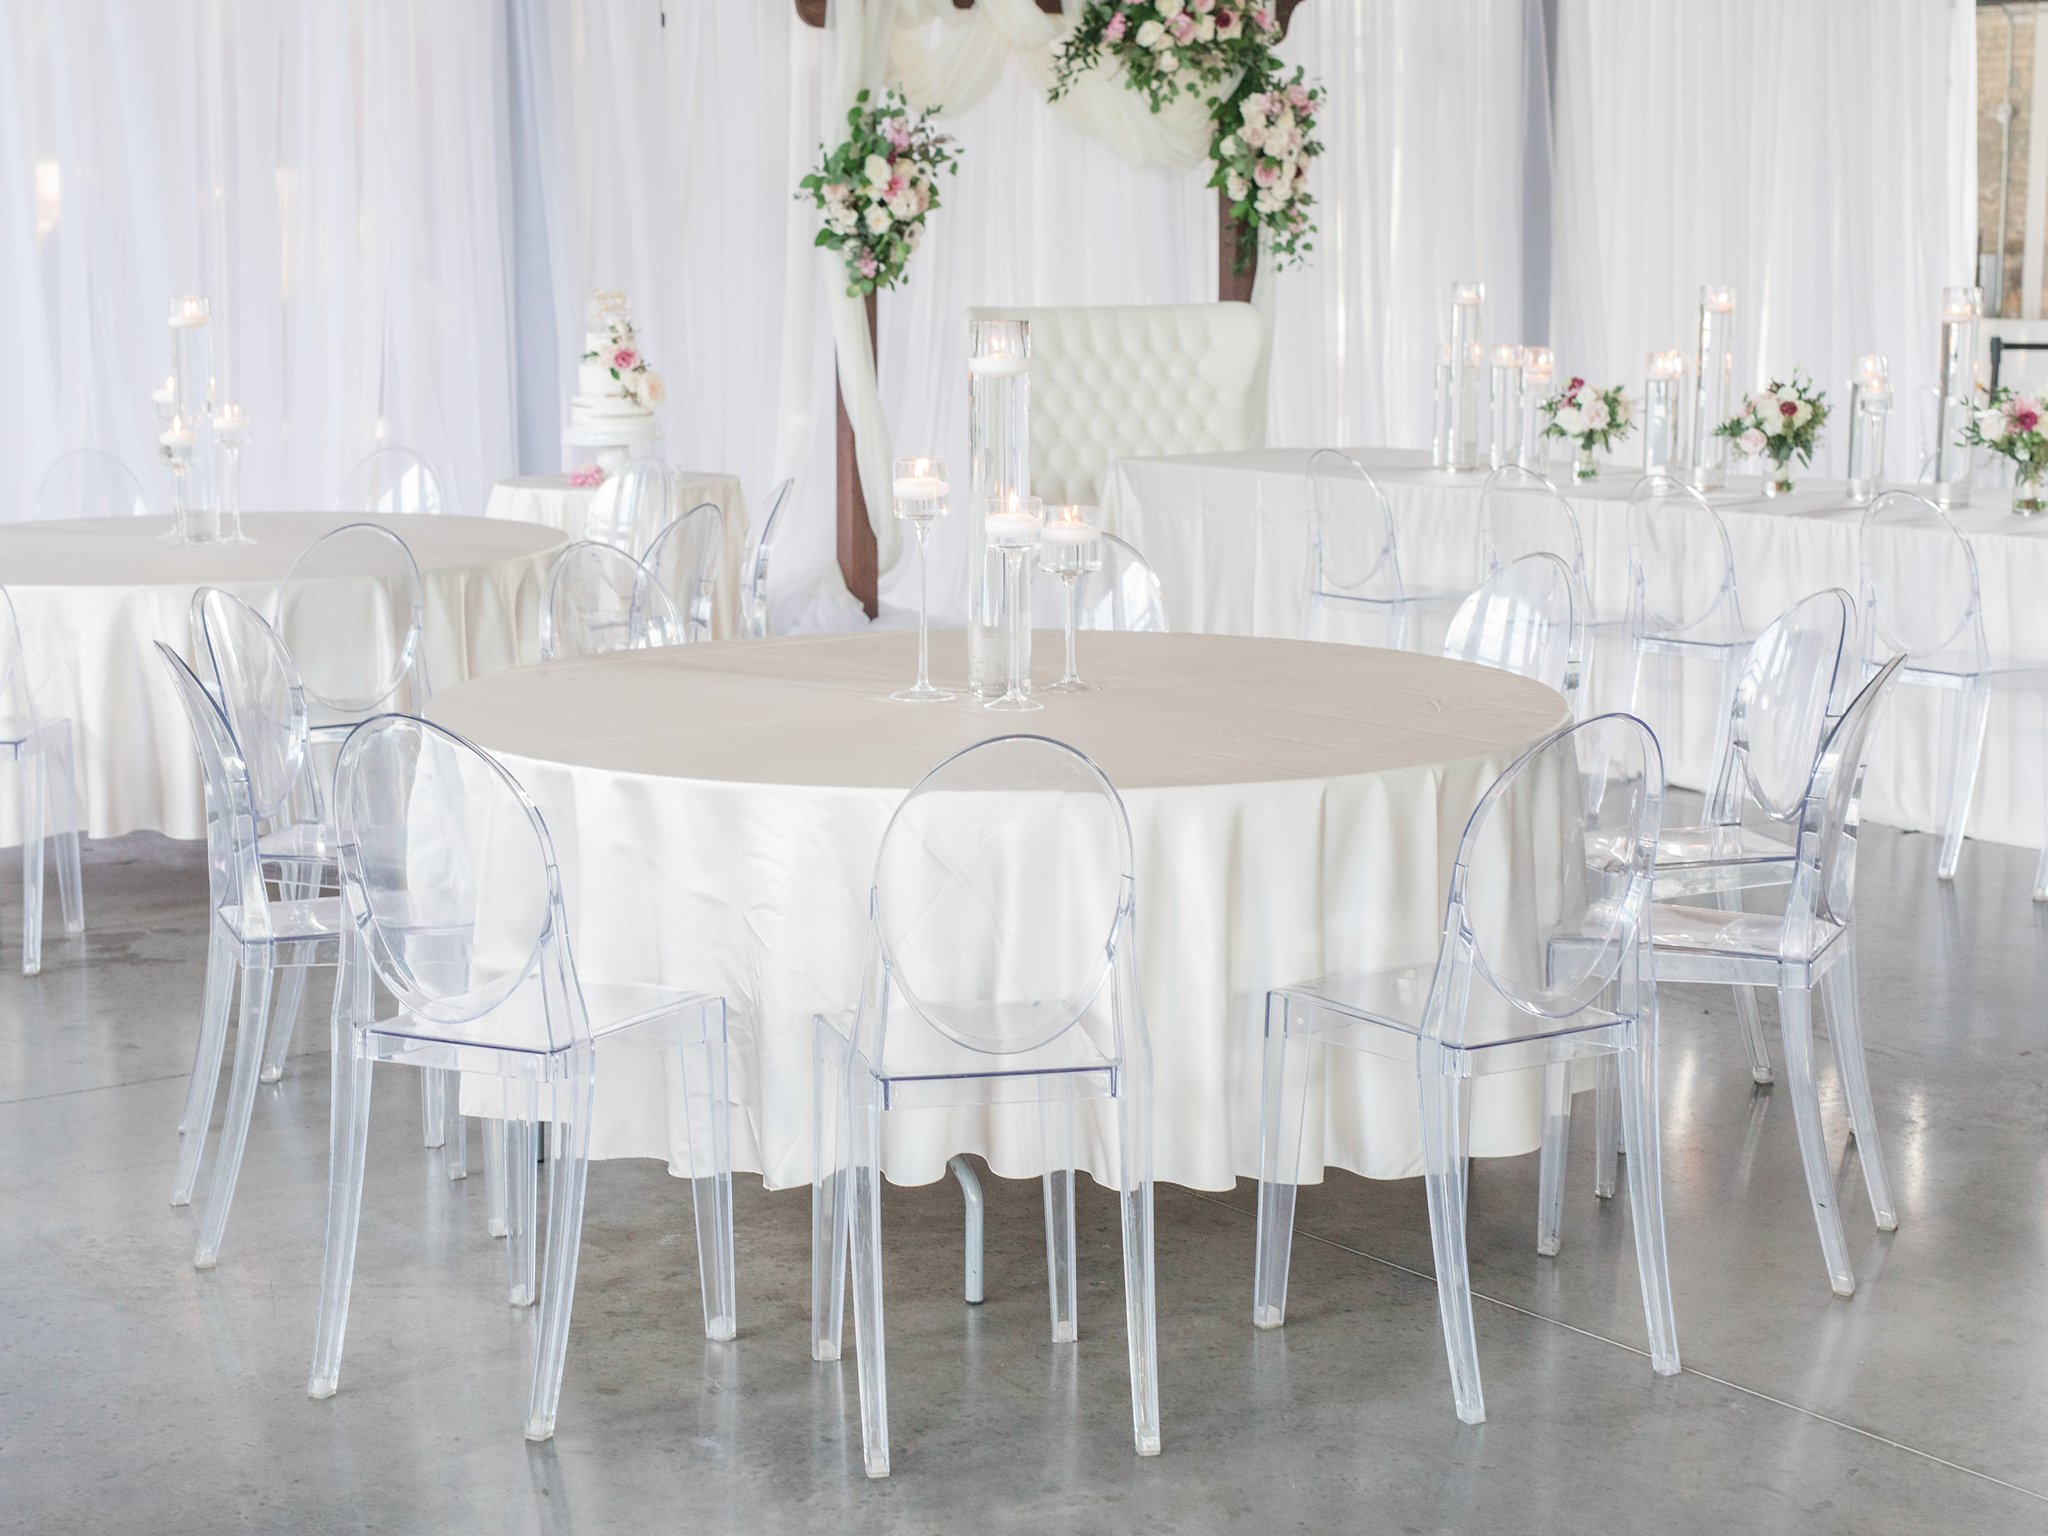 Round table with ghost chairs cream linen Horticulture Building wedding at Lansdowne Amy Pinder Photography